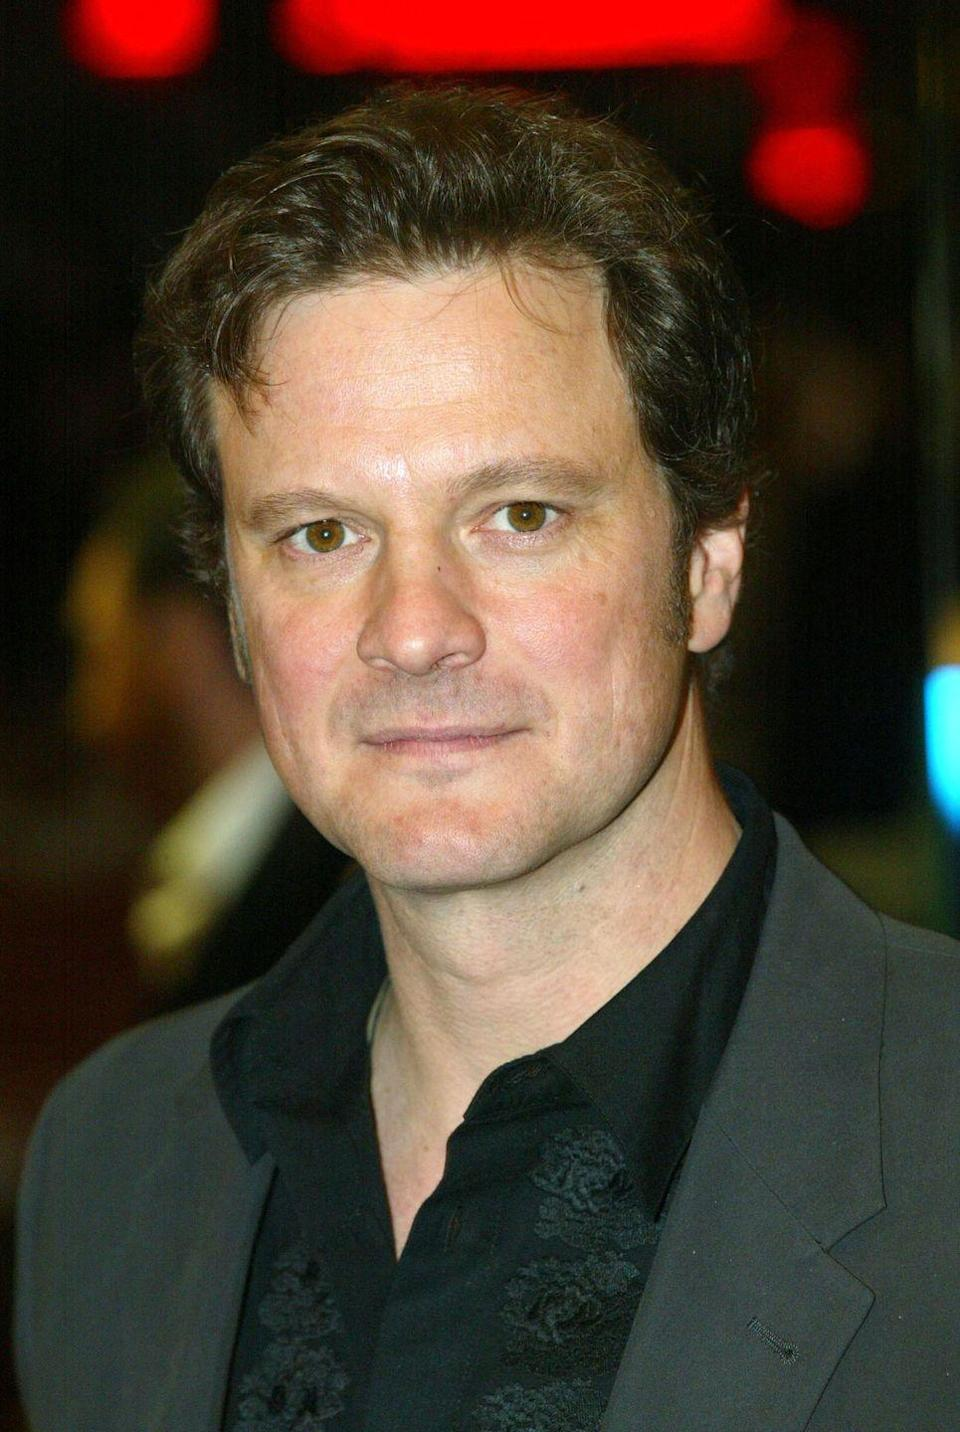 <p>From <em>Pride & Prejudice </em>to <em>Bridget Jones's Diary</em>, Colin Firth's curly brown hair is part of his signature look.</p>